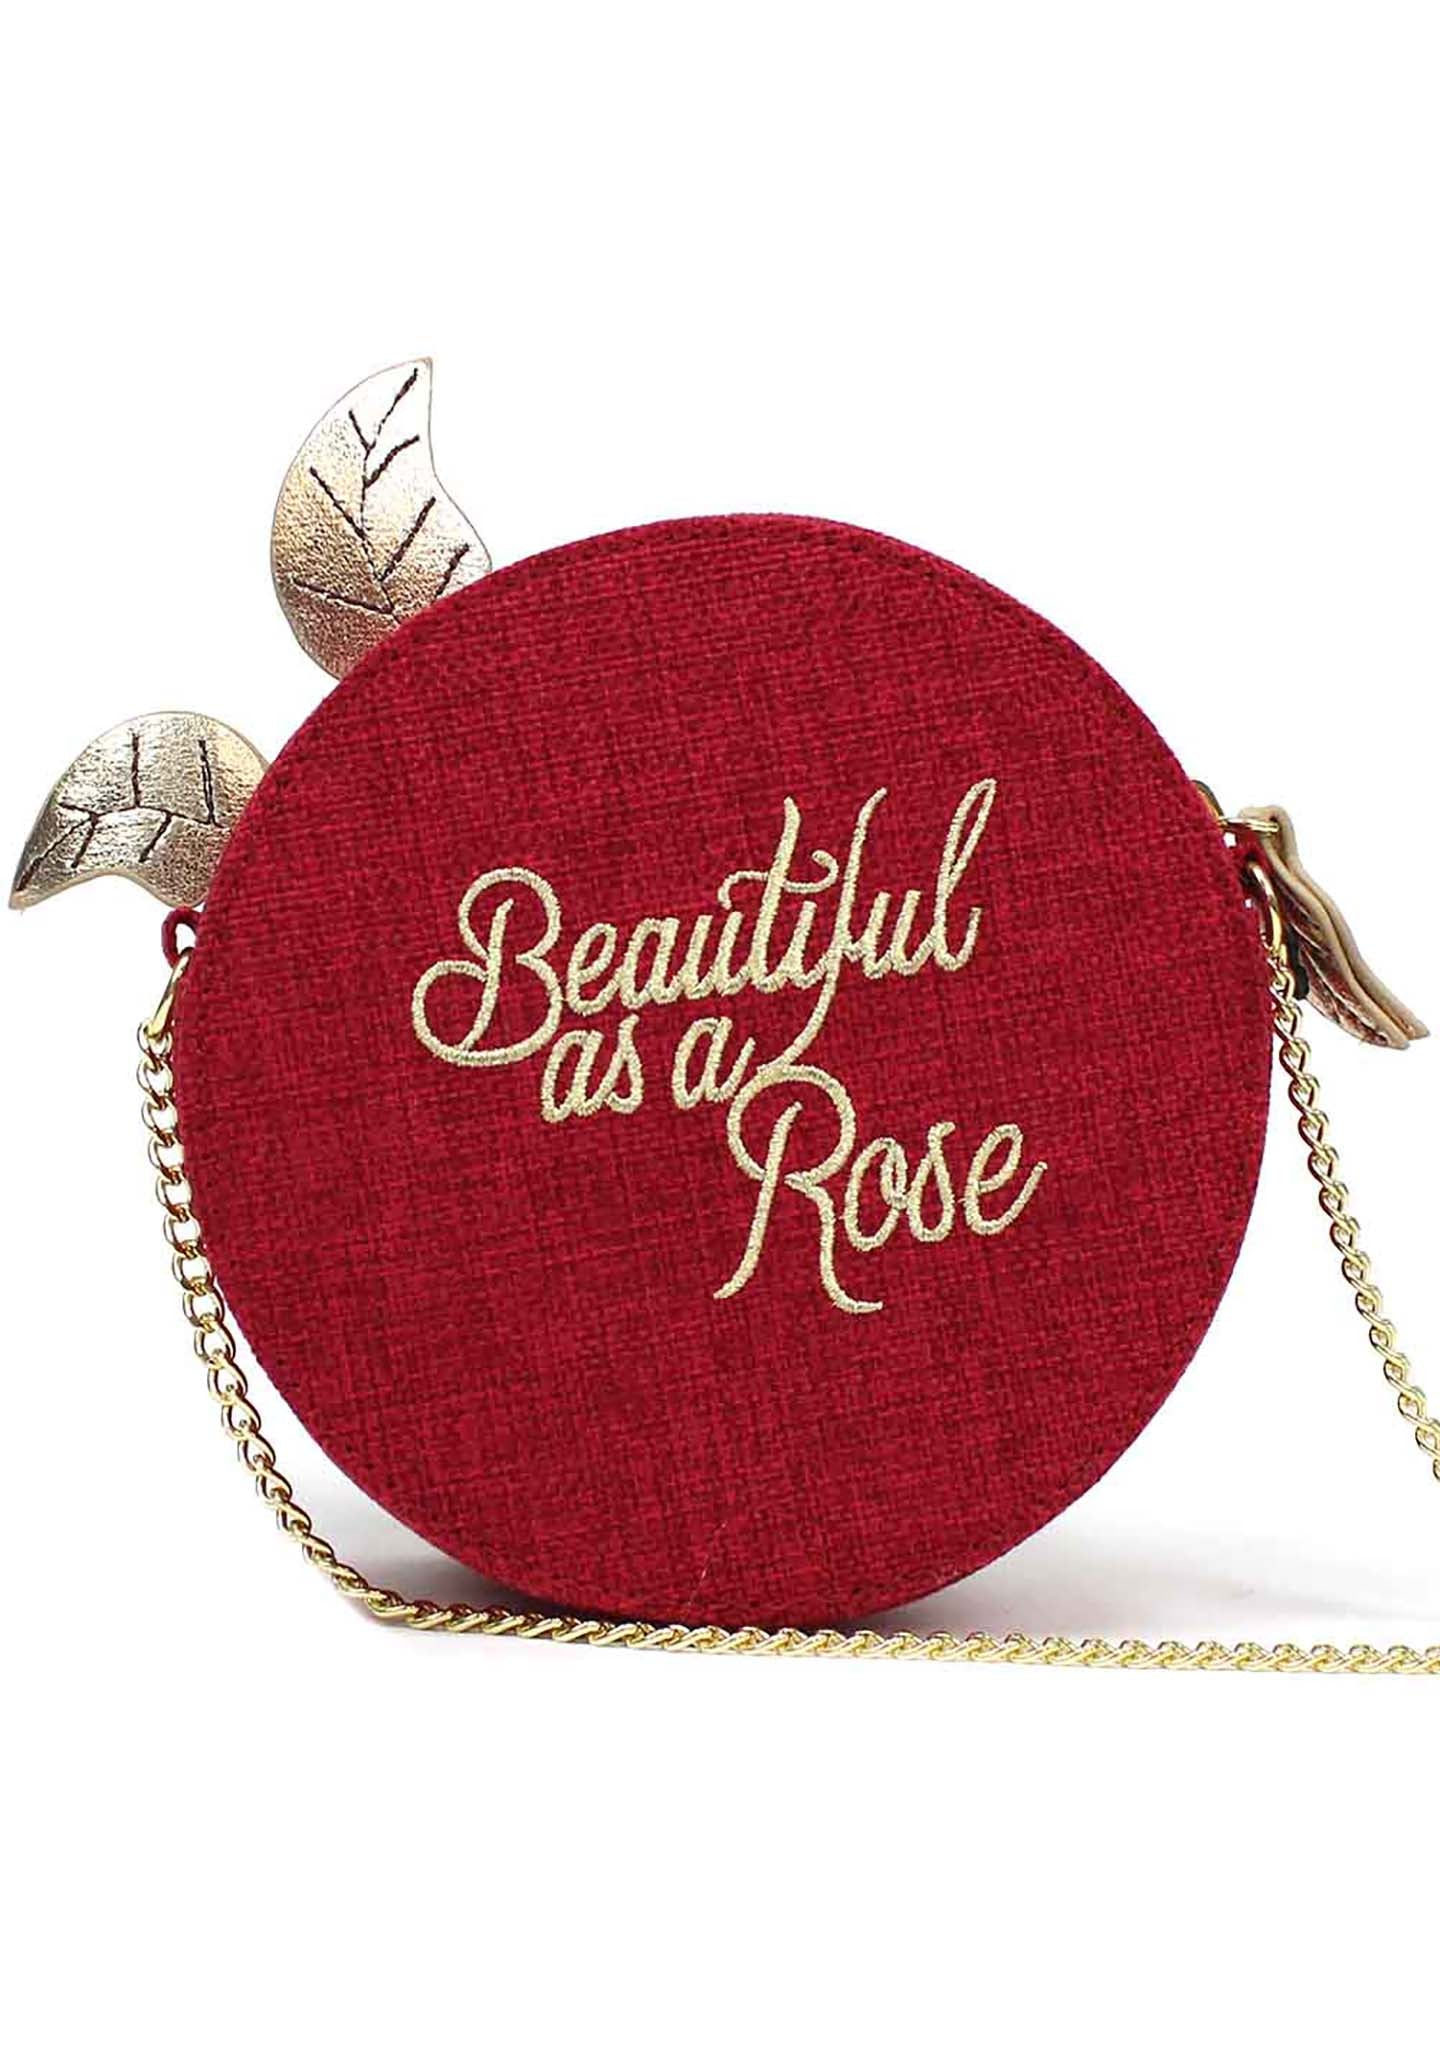 X Beauty and the Beast Linen Rose Crossbody Bag